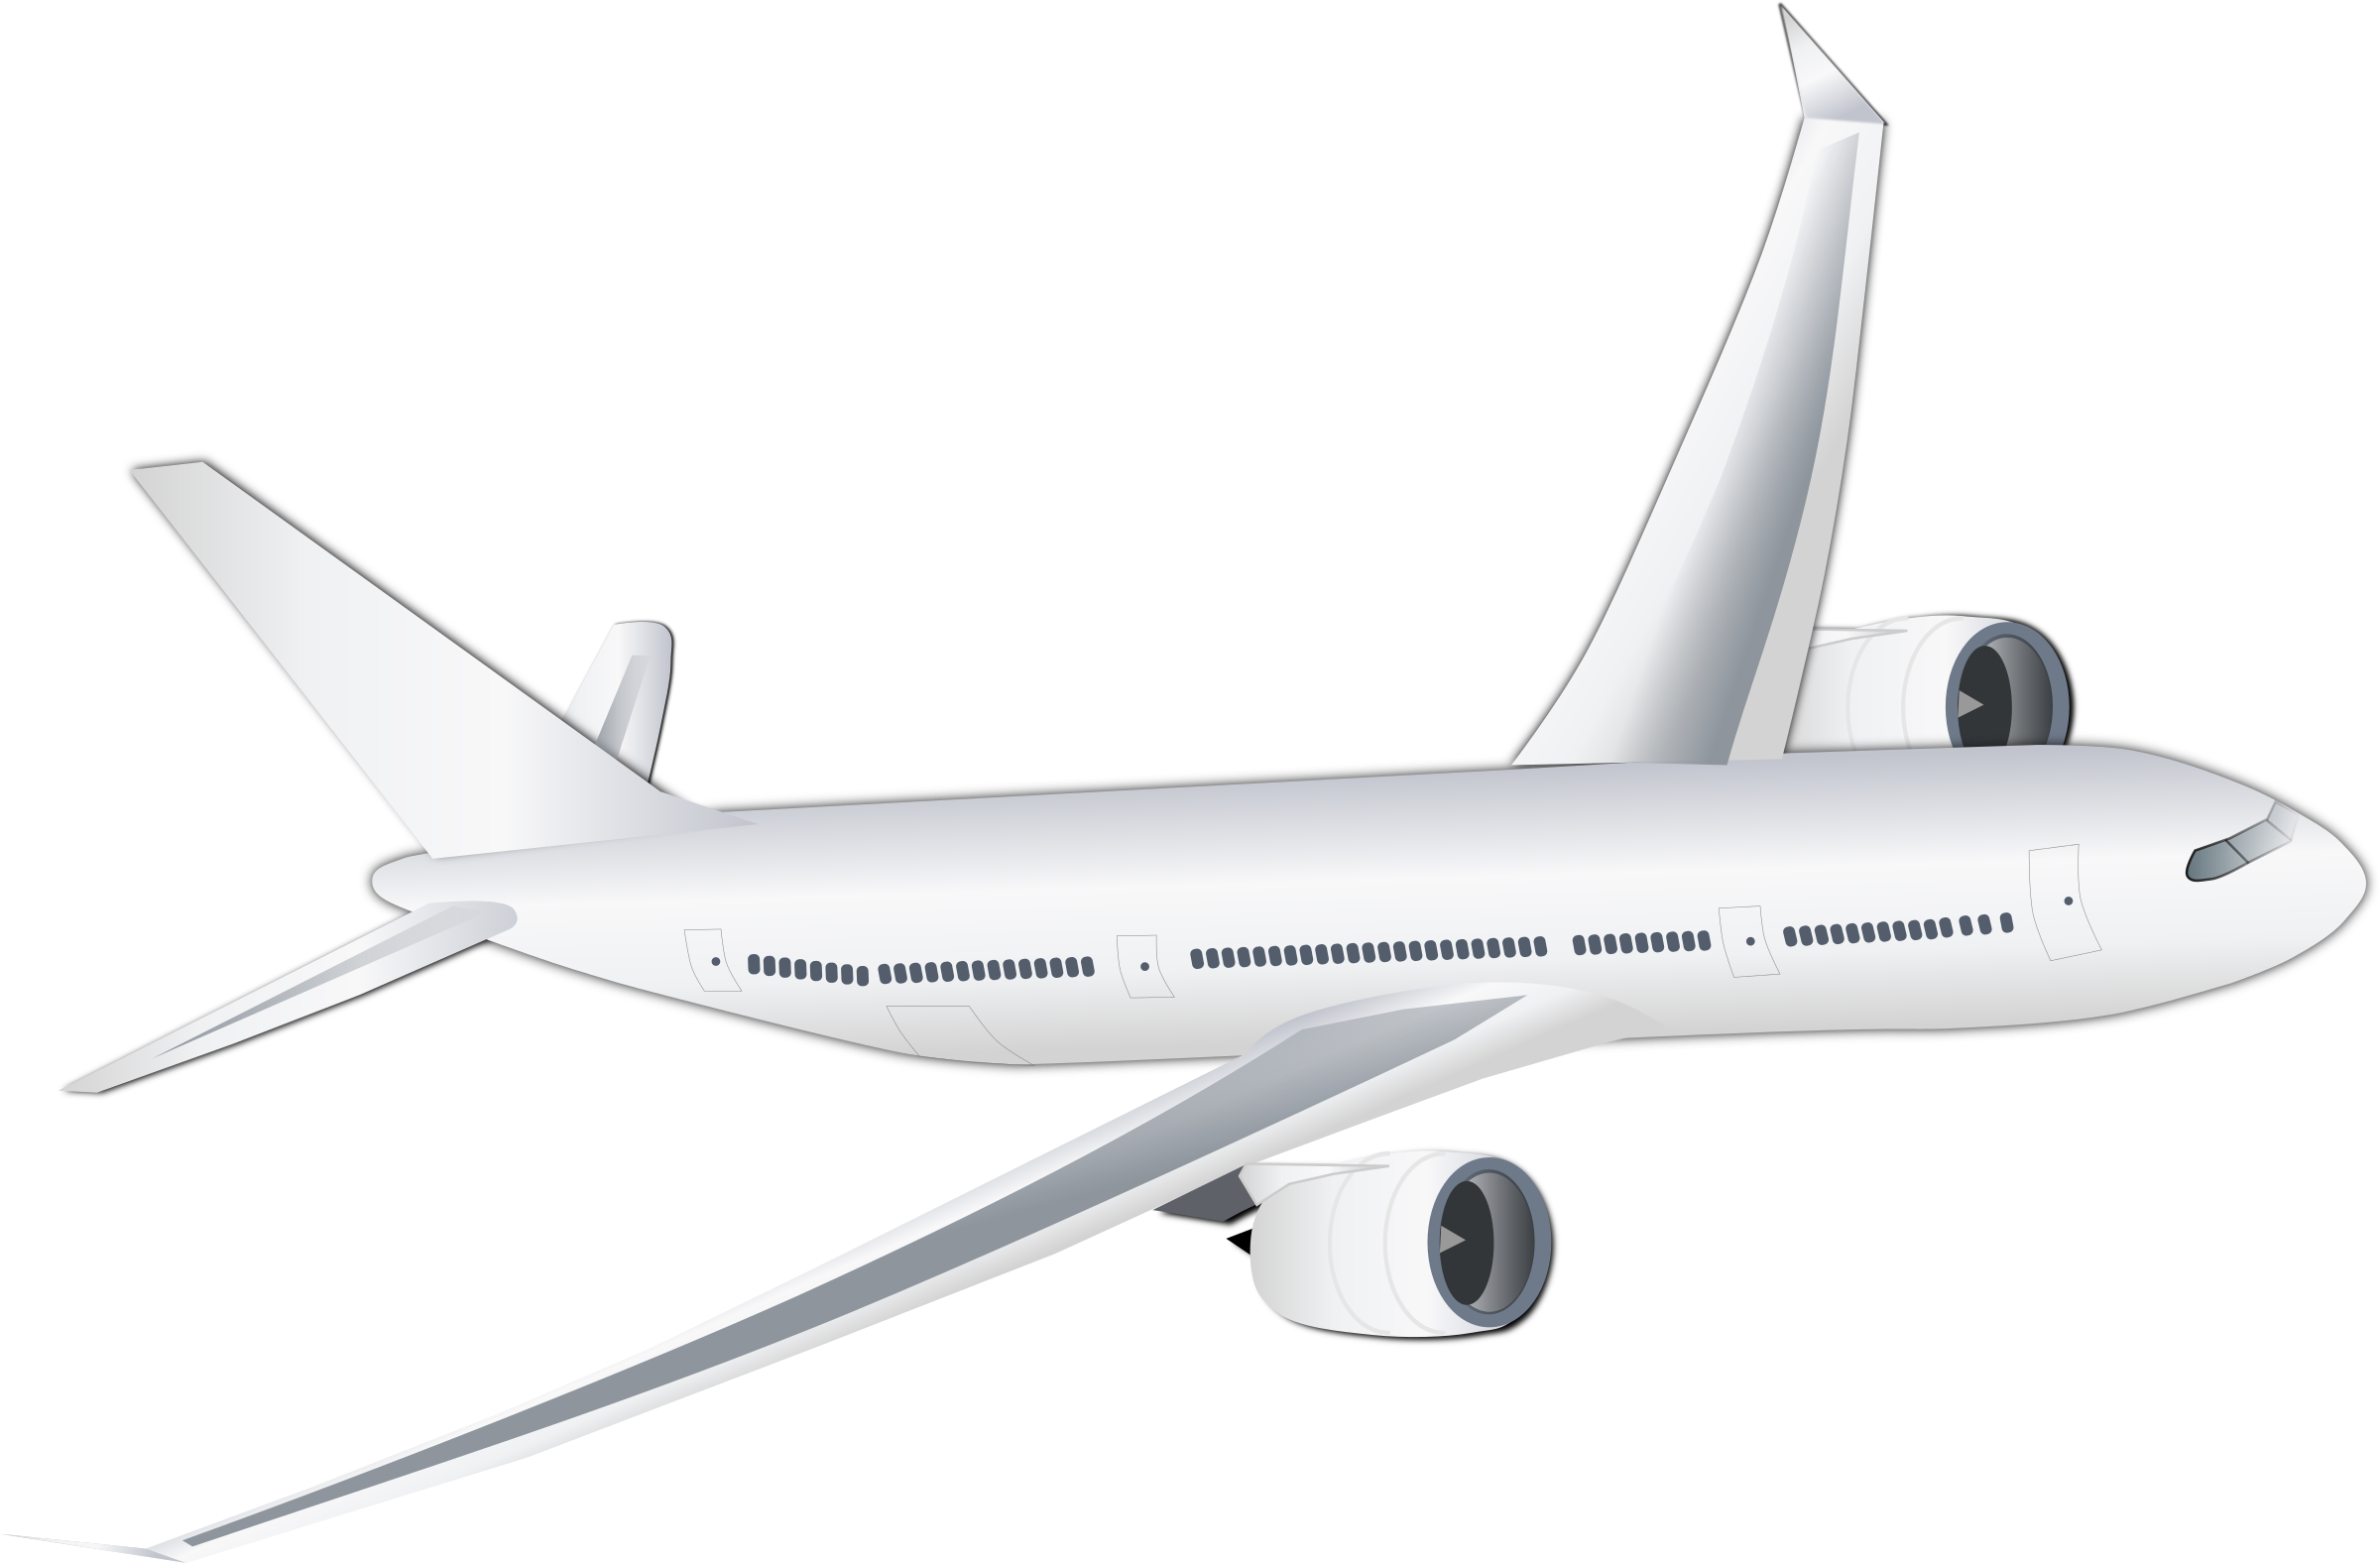 White clipart airplane. Plane big image png